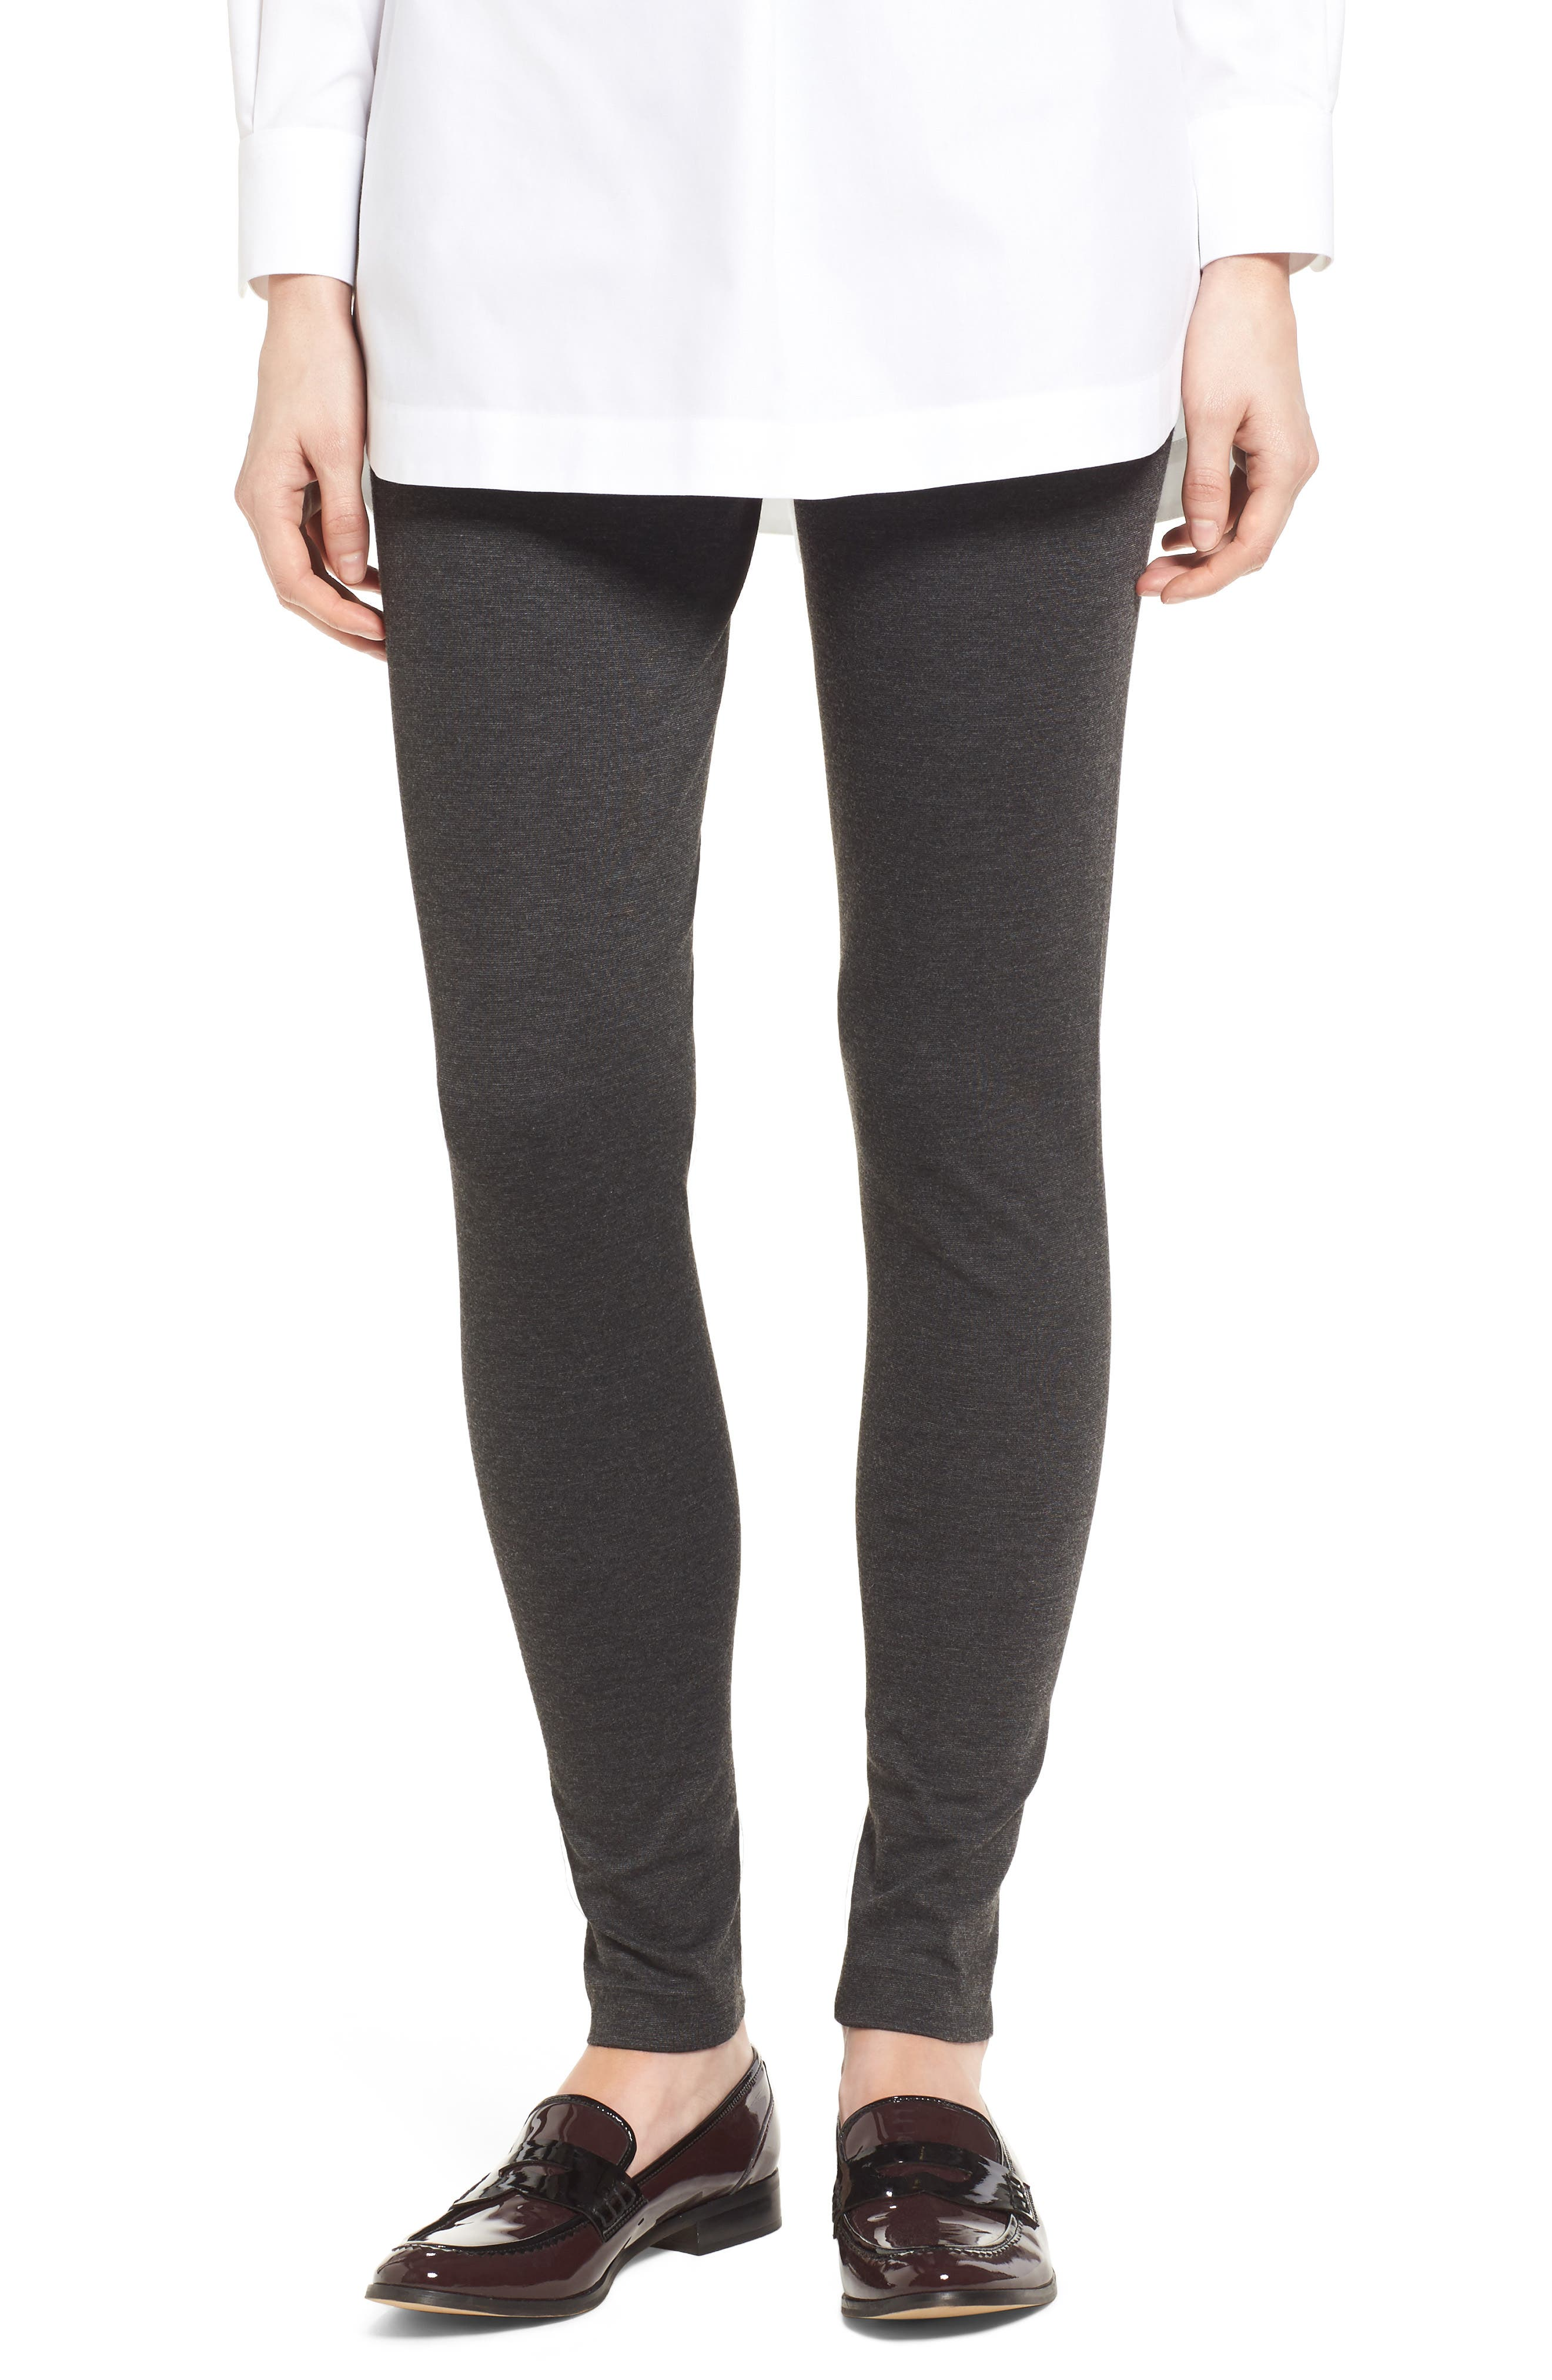 Main Image - Two by Vince Camuto Seamed Back Leggings